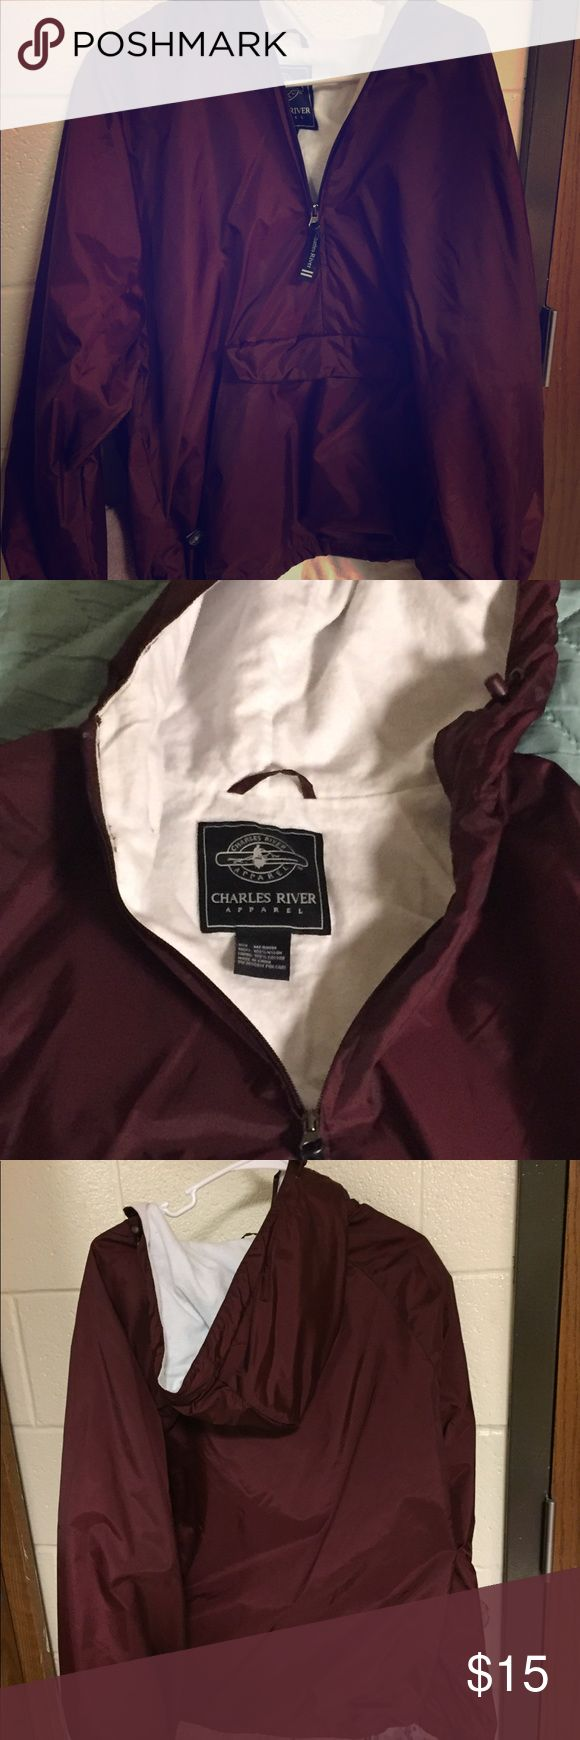 Windbreaker / Rain jacket It's a medium, but a big medium - good for layering! I used it in this way to go to a Redskins game in the winter. Plenty of room, large front pocket. Nice color. Charles River Jackets & Coats Utility Jackets